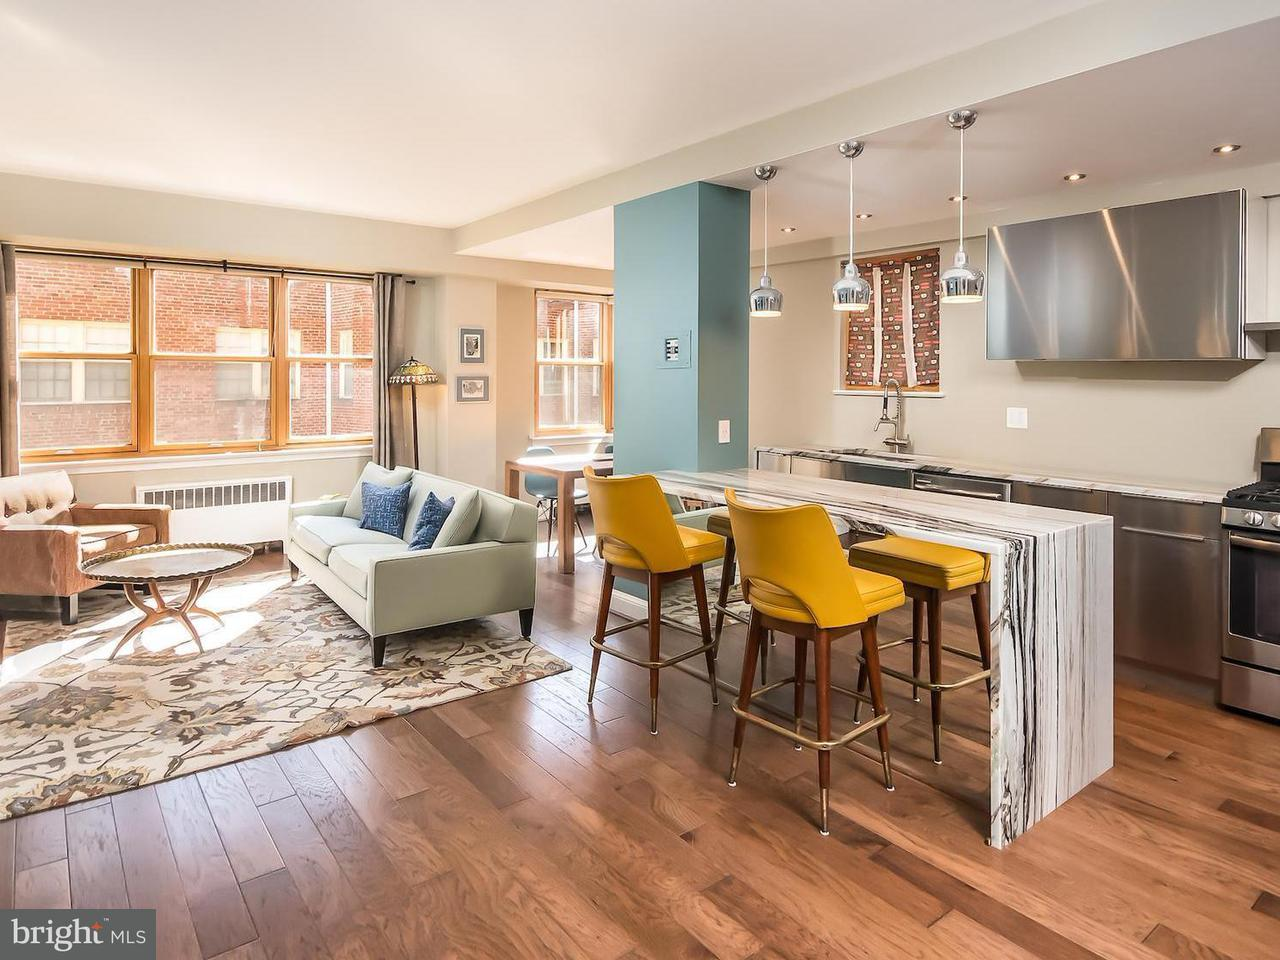 Condominium for Sale at 3025 Ontario Rd Nw #306 3025 Ontario Rd Nw #306 Washington, District Of Columbia 20009 United States